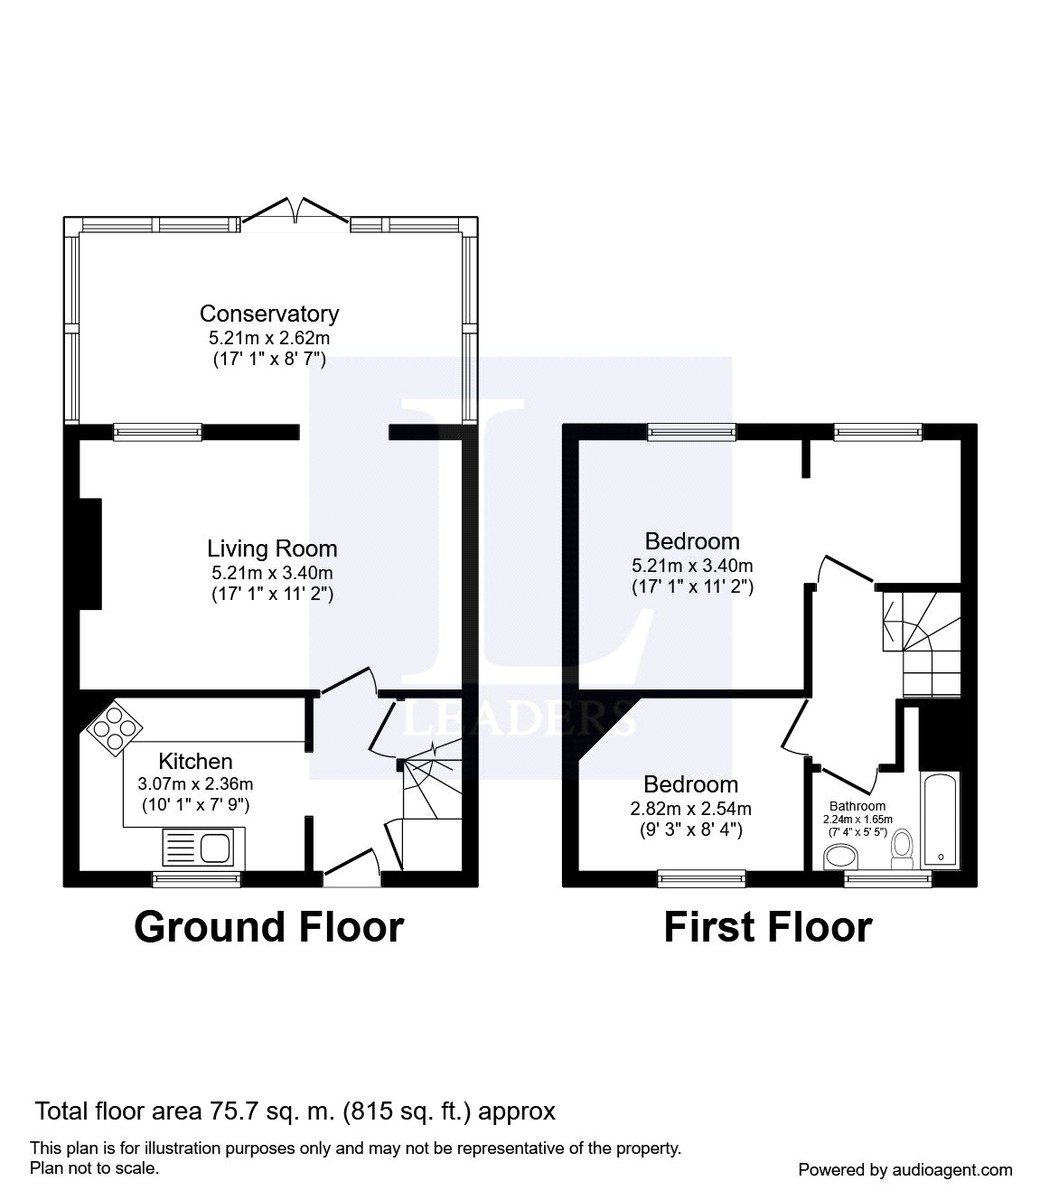 Coastguard cottages, Pevensey, Normans Bay East Sussex floorplan